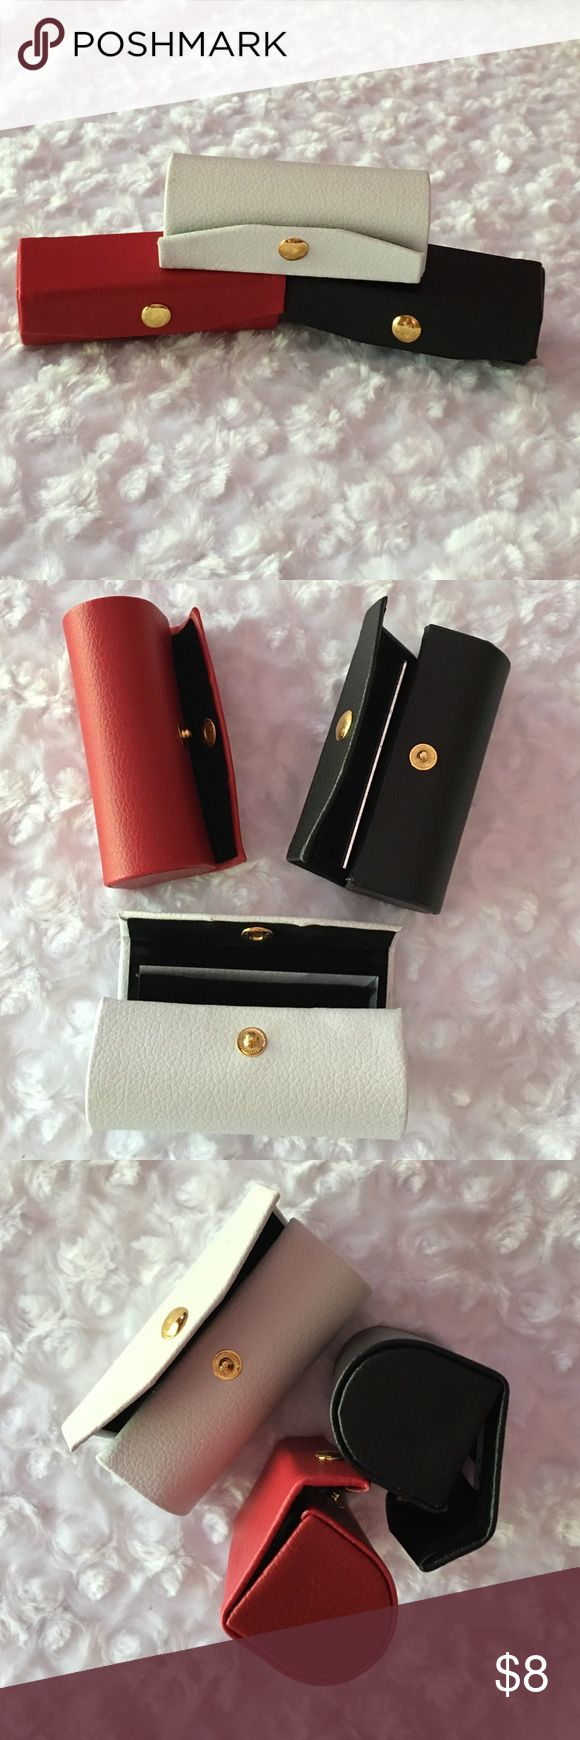 🎈LEATHER LIPSTICK MIRROR CASE Genuine leather lipstick cases with Mirror. Black. Red. White. Indicate which color. Stay Classy my friends. -No trades. Makeup Brushes & Tools